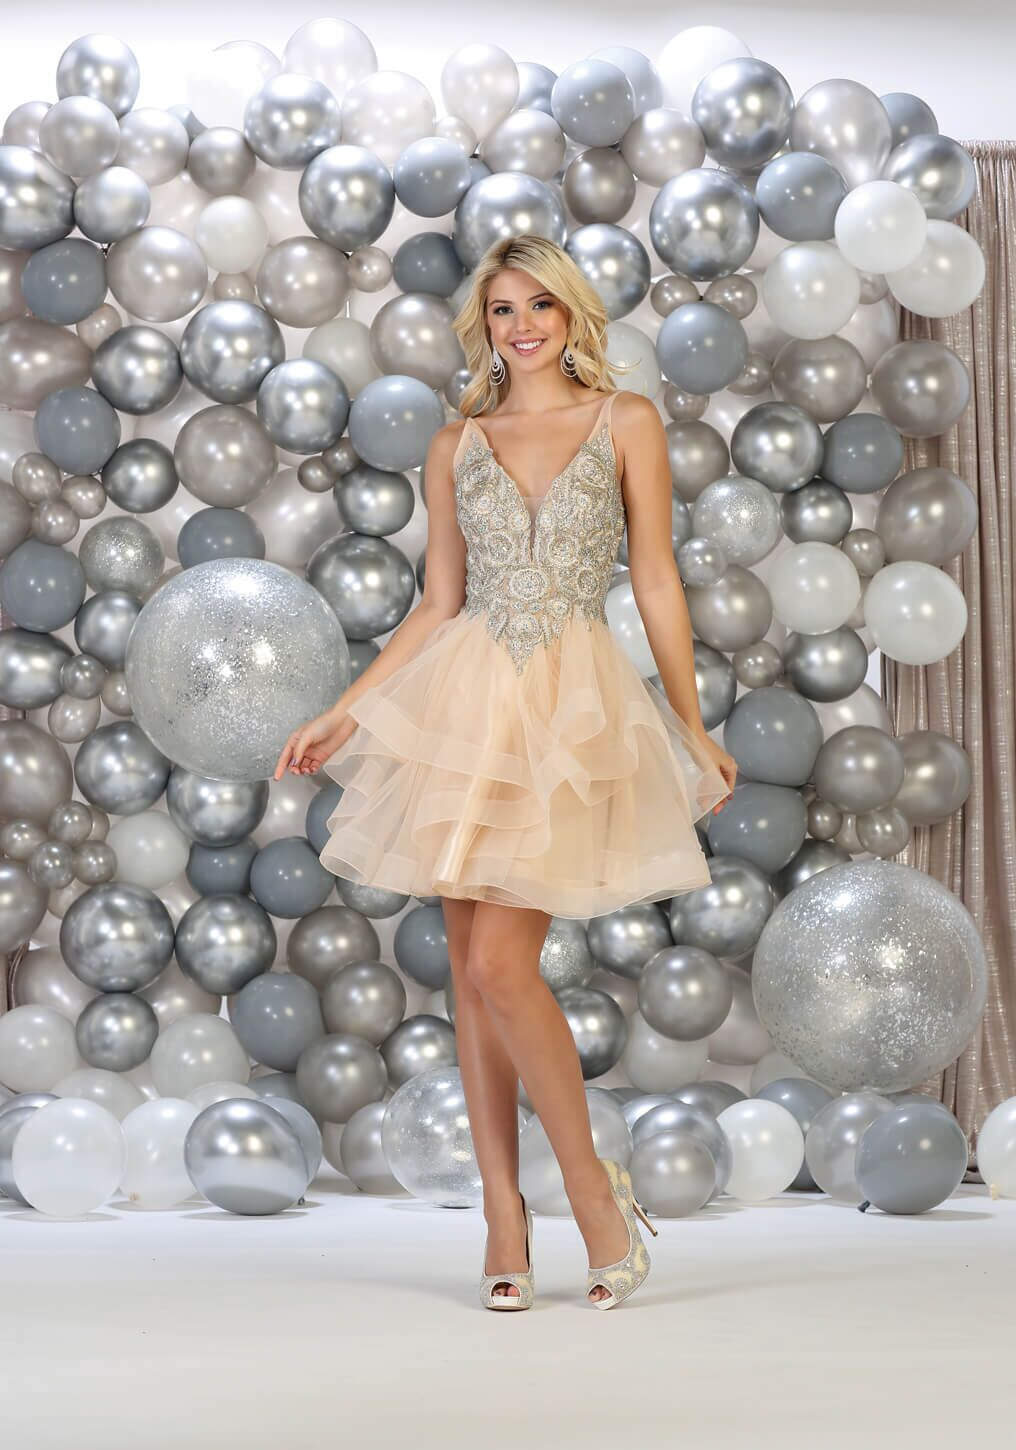 Short Spaghetti Strap Prom Homecoming Cocktail Dress - The Dress Outlet Champagne